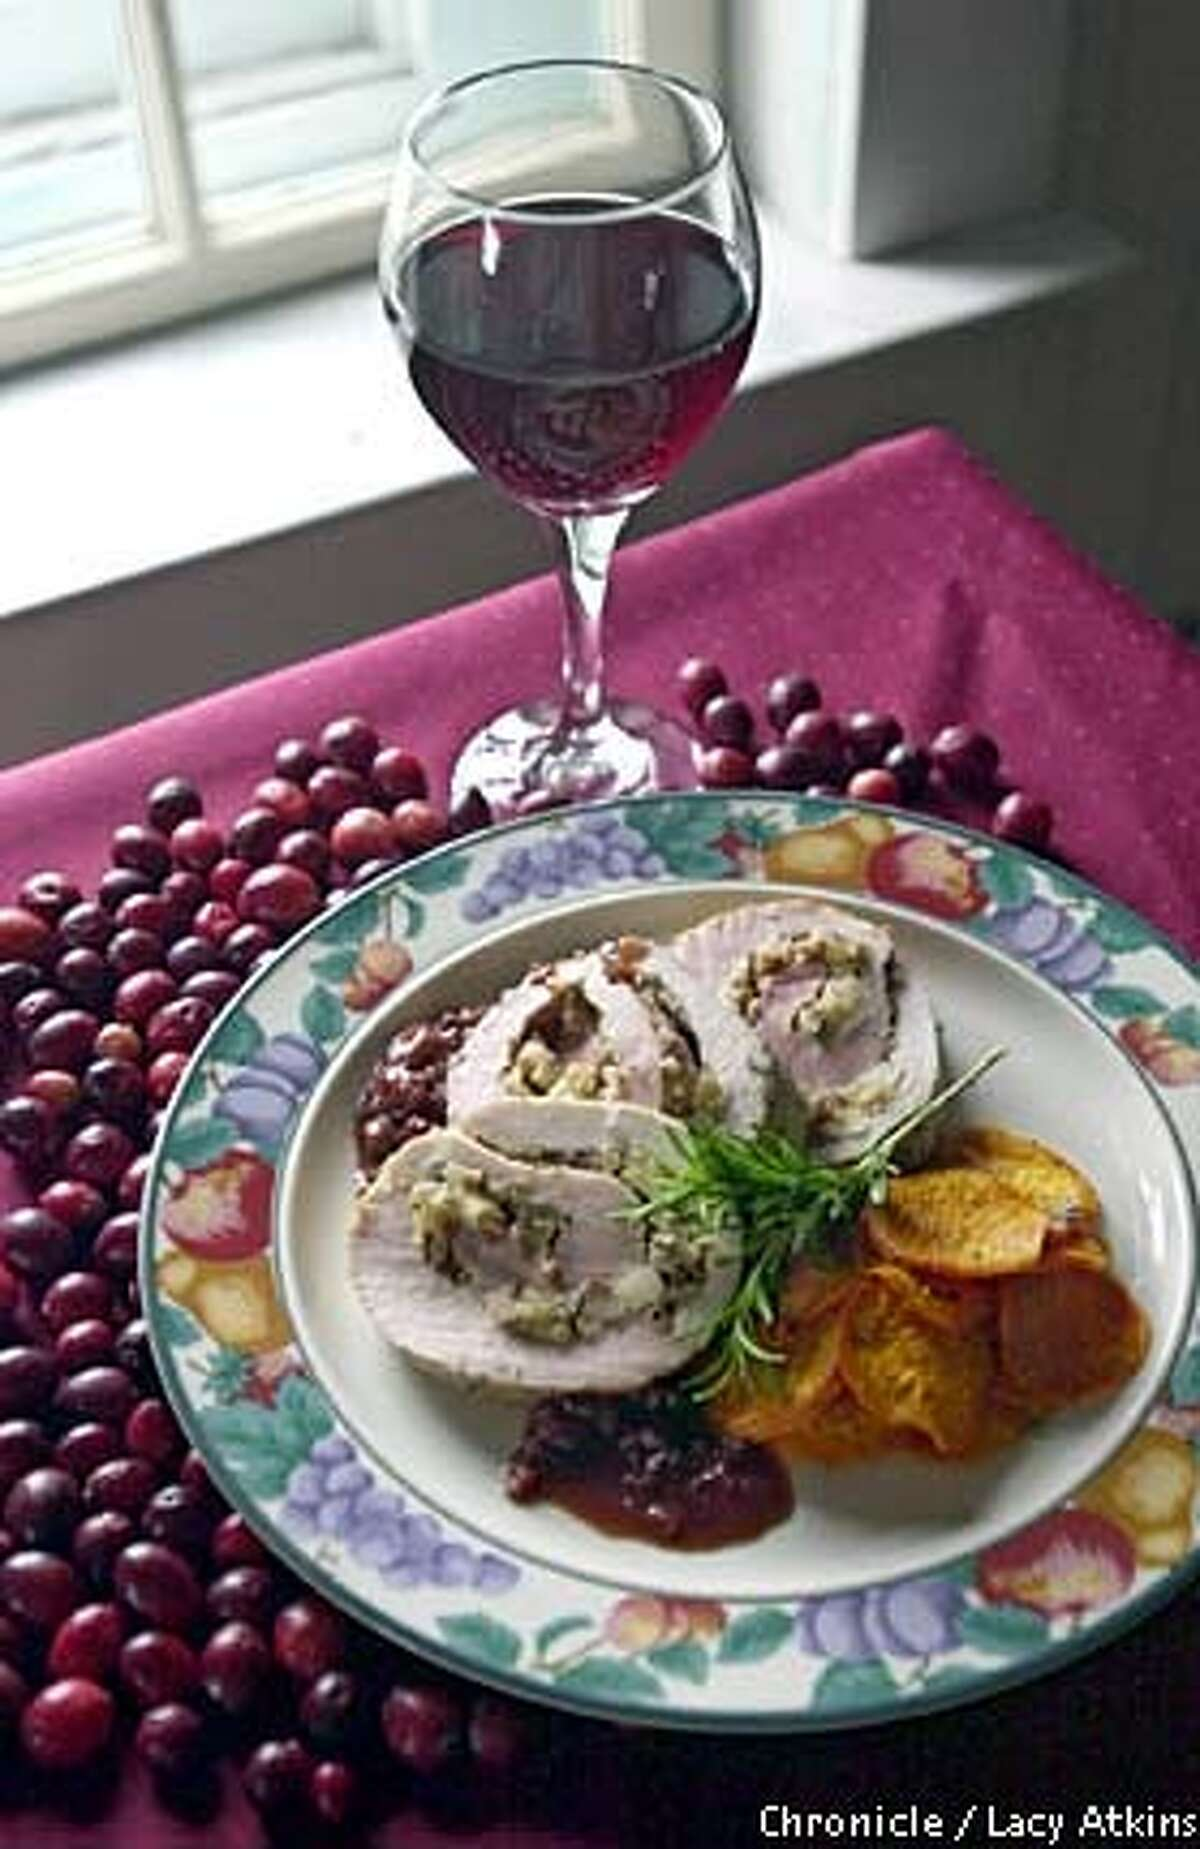 Festive: Tangy dried cranberries star in a sauce for a rolled stuffed pork loin. Chronicle photo by Lacy Atkins